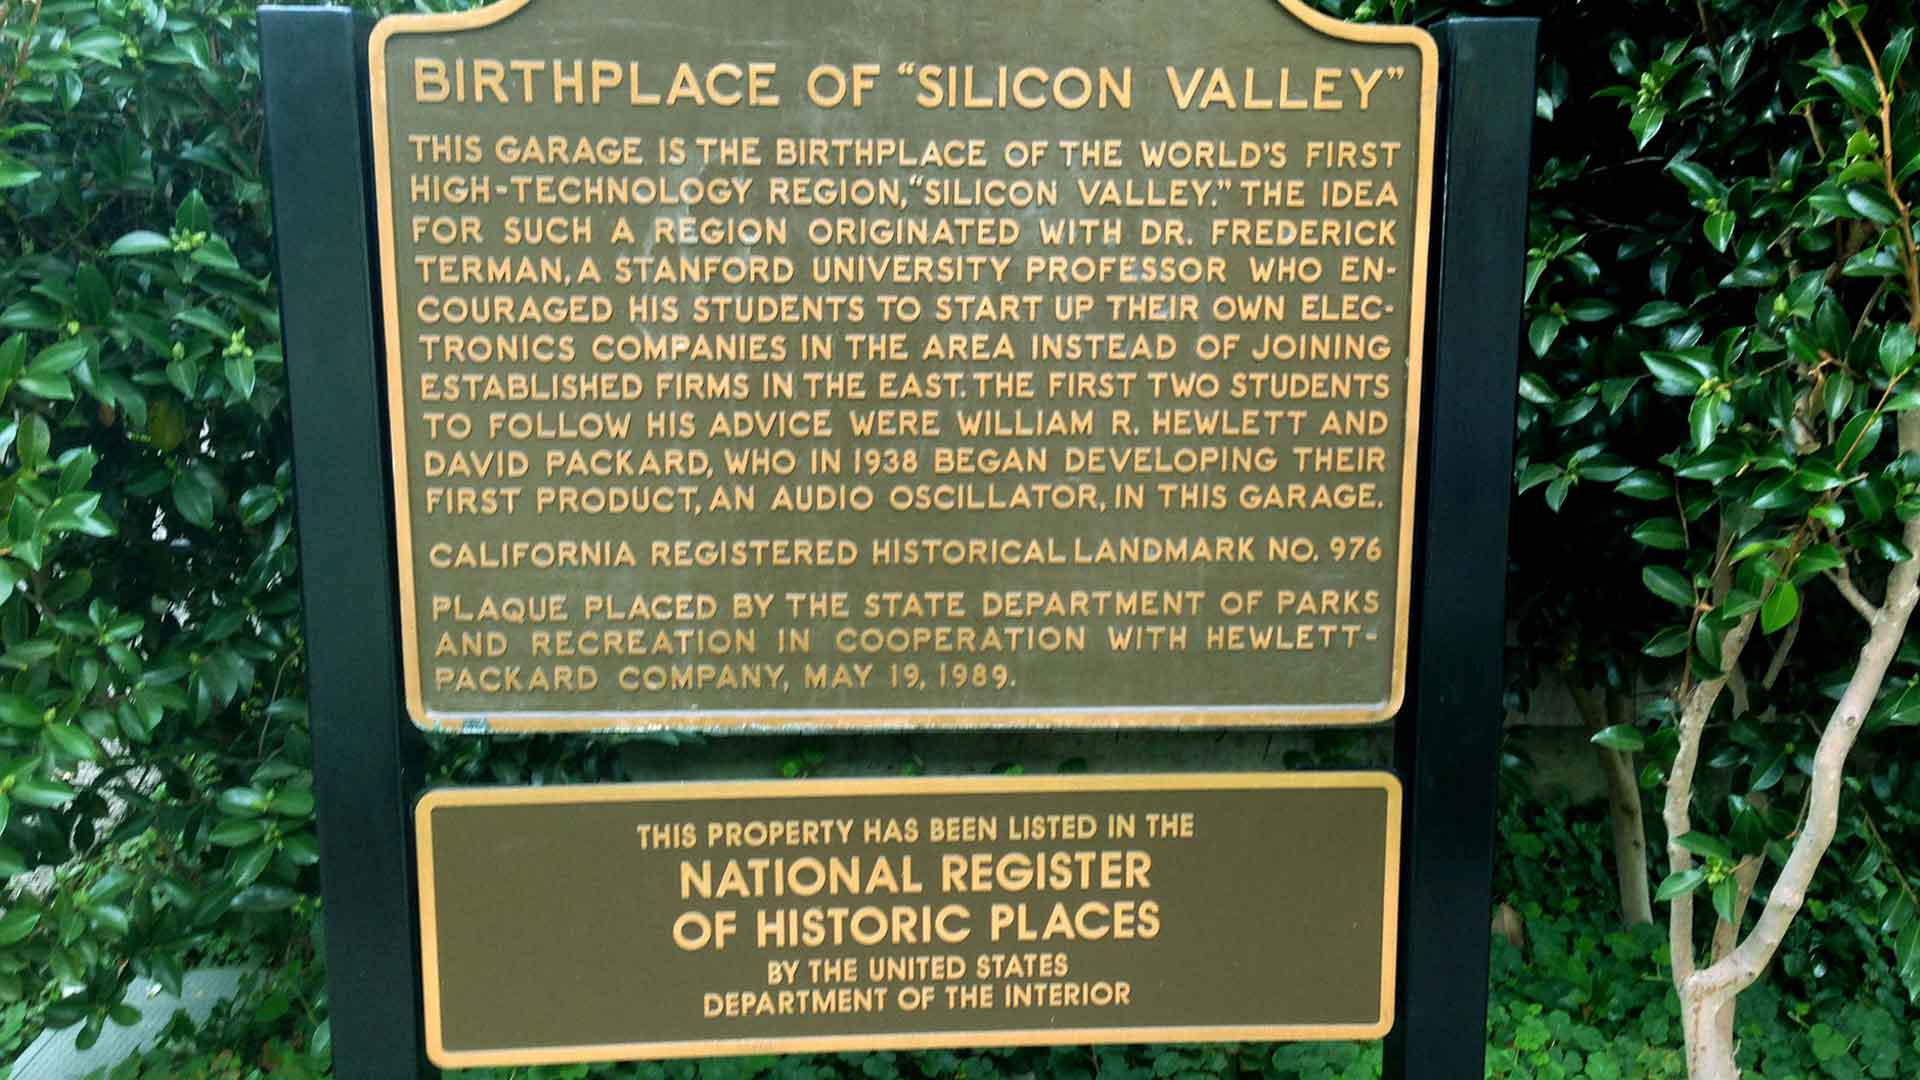 Birthplace Of Silicon Valley 1